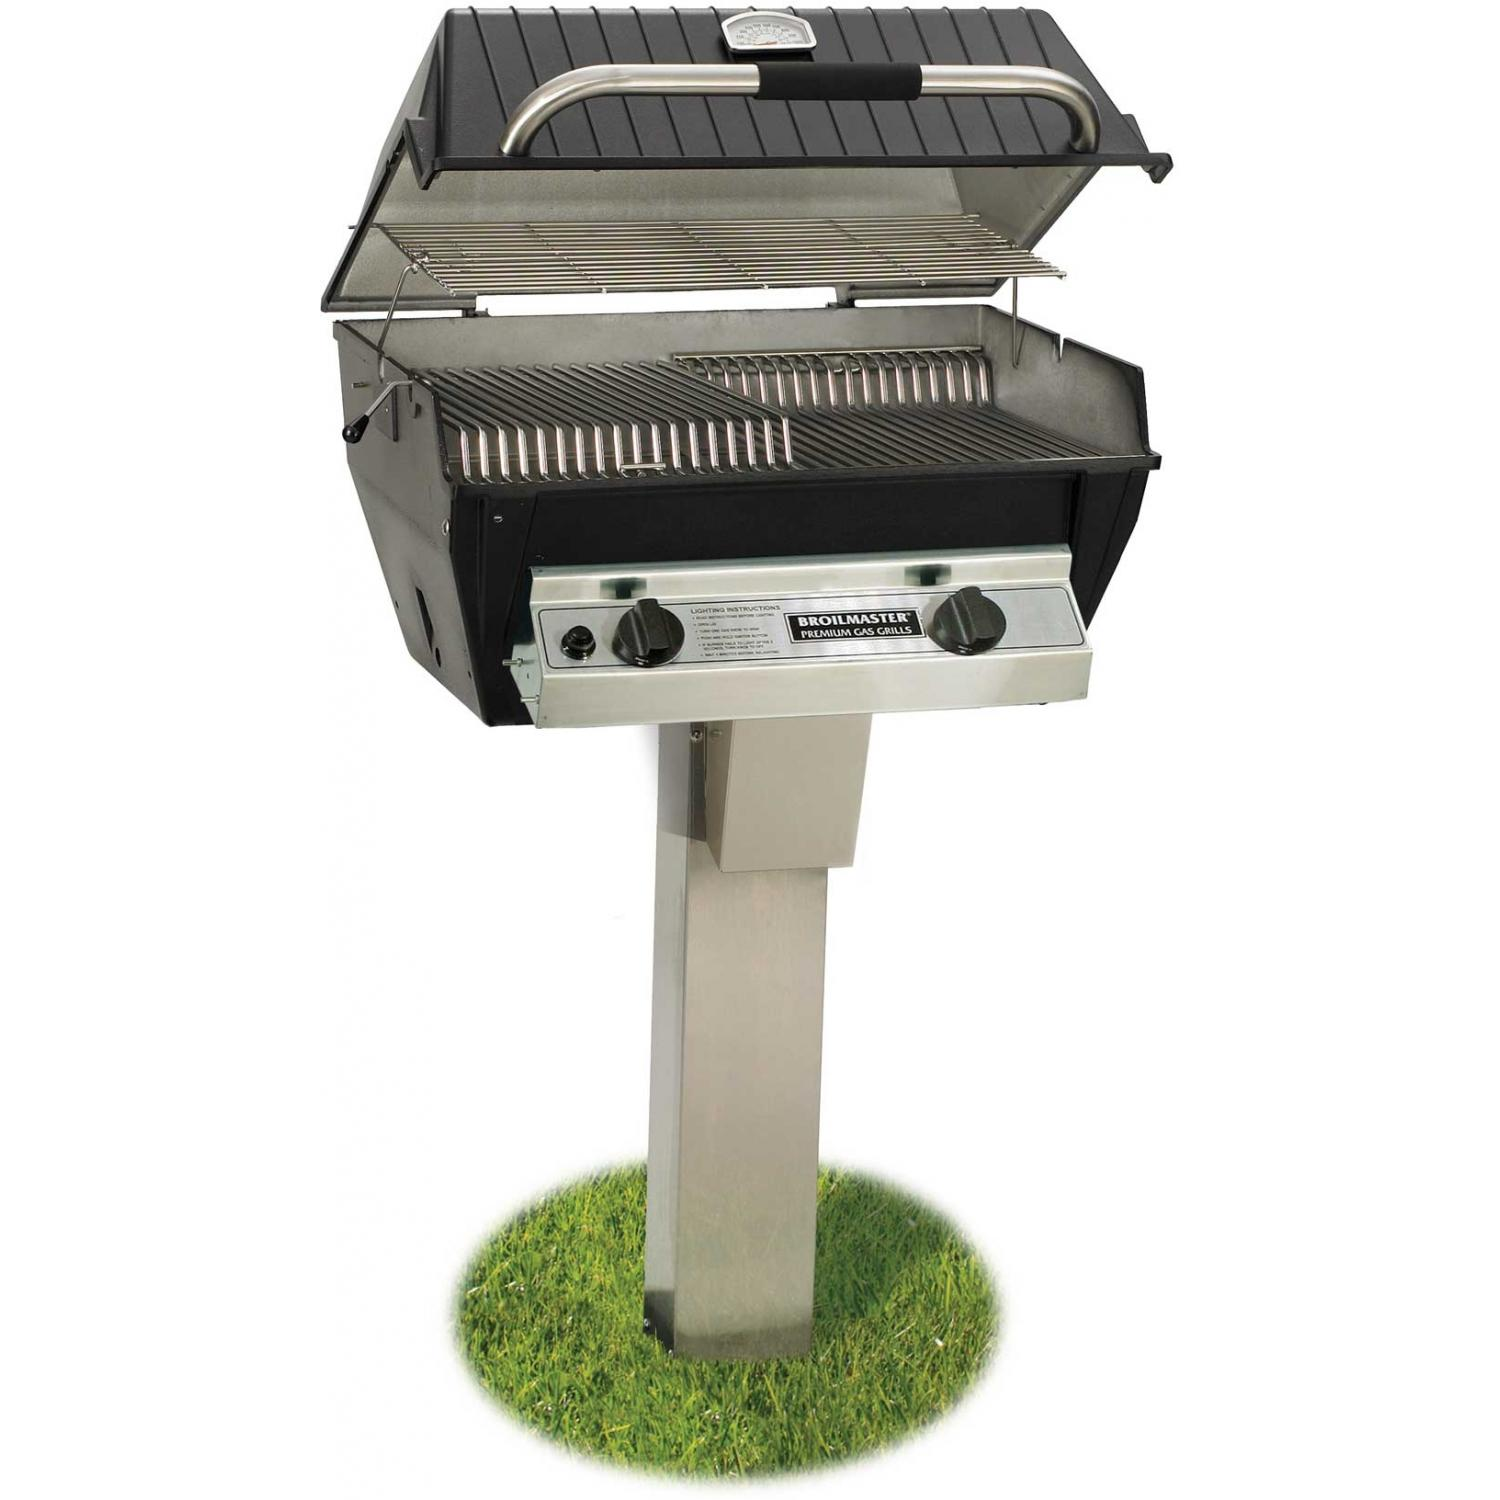 Broilmaster R3 Infrared Propane Gas Grill On Stainless Steel In-ground Post